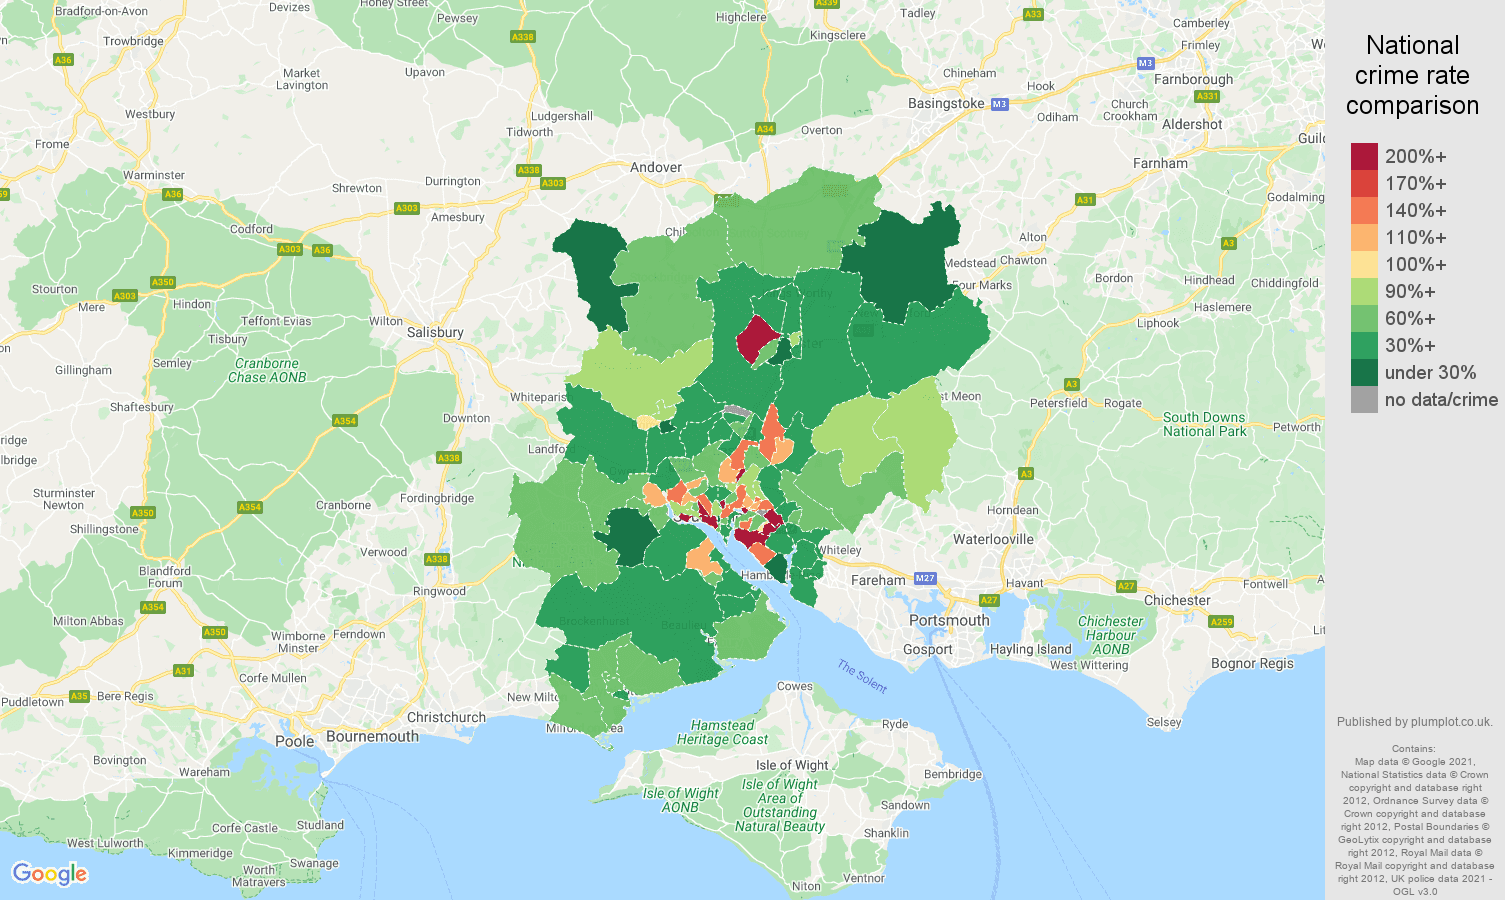 Southampton other crime rate comparison map